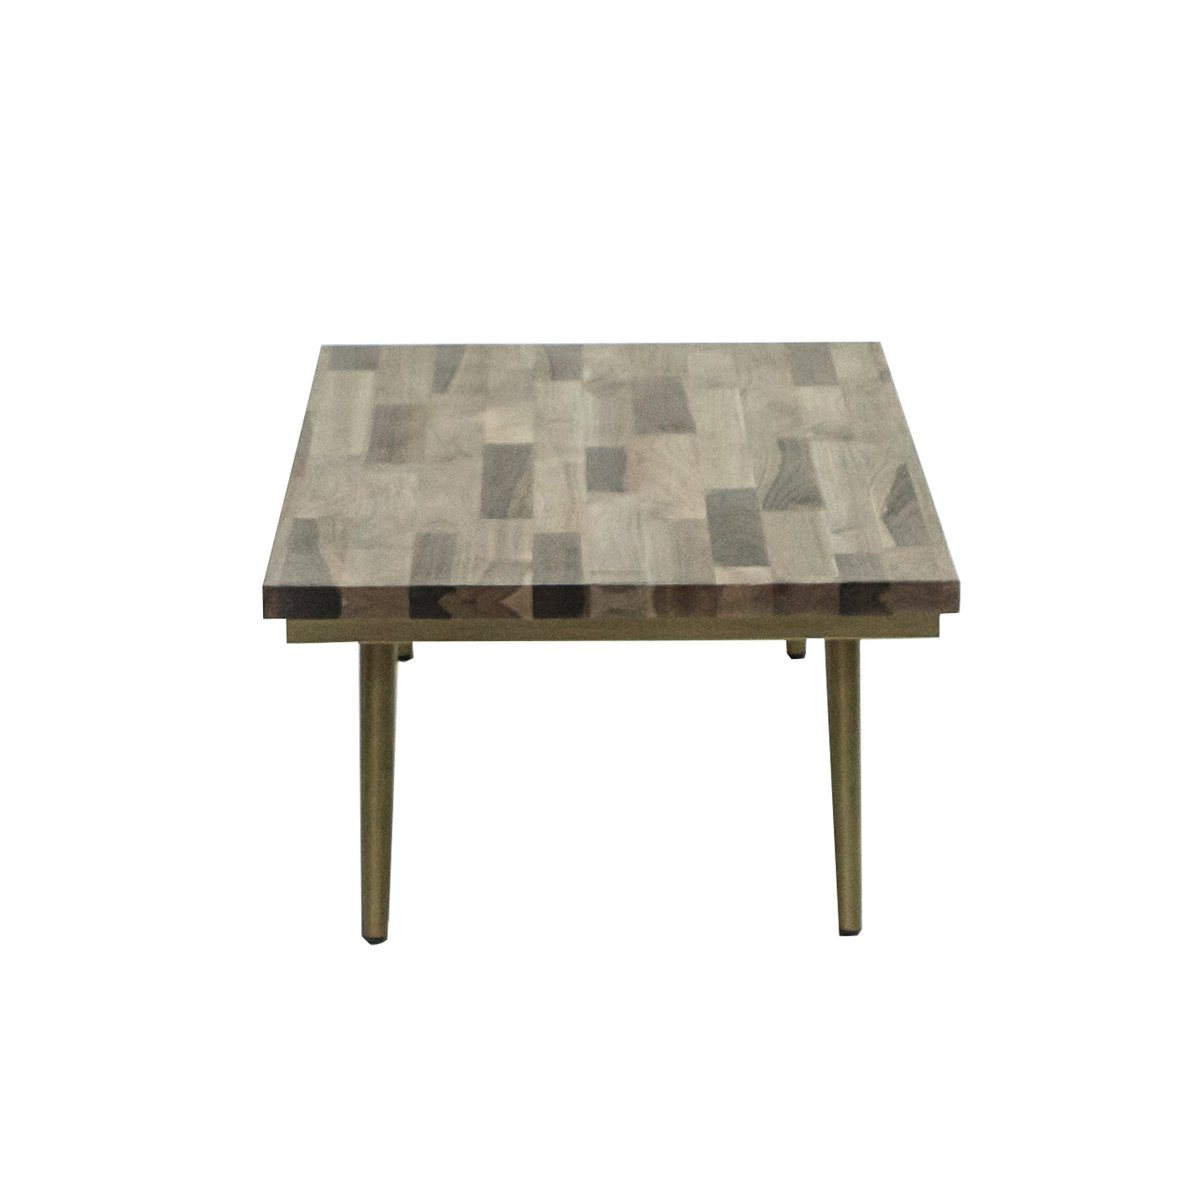 Mixed Solid Wood RECTANGULAR COFFEE TABLE - Showhome Furniture